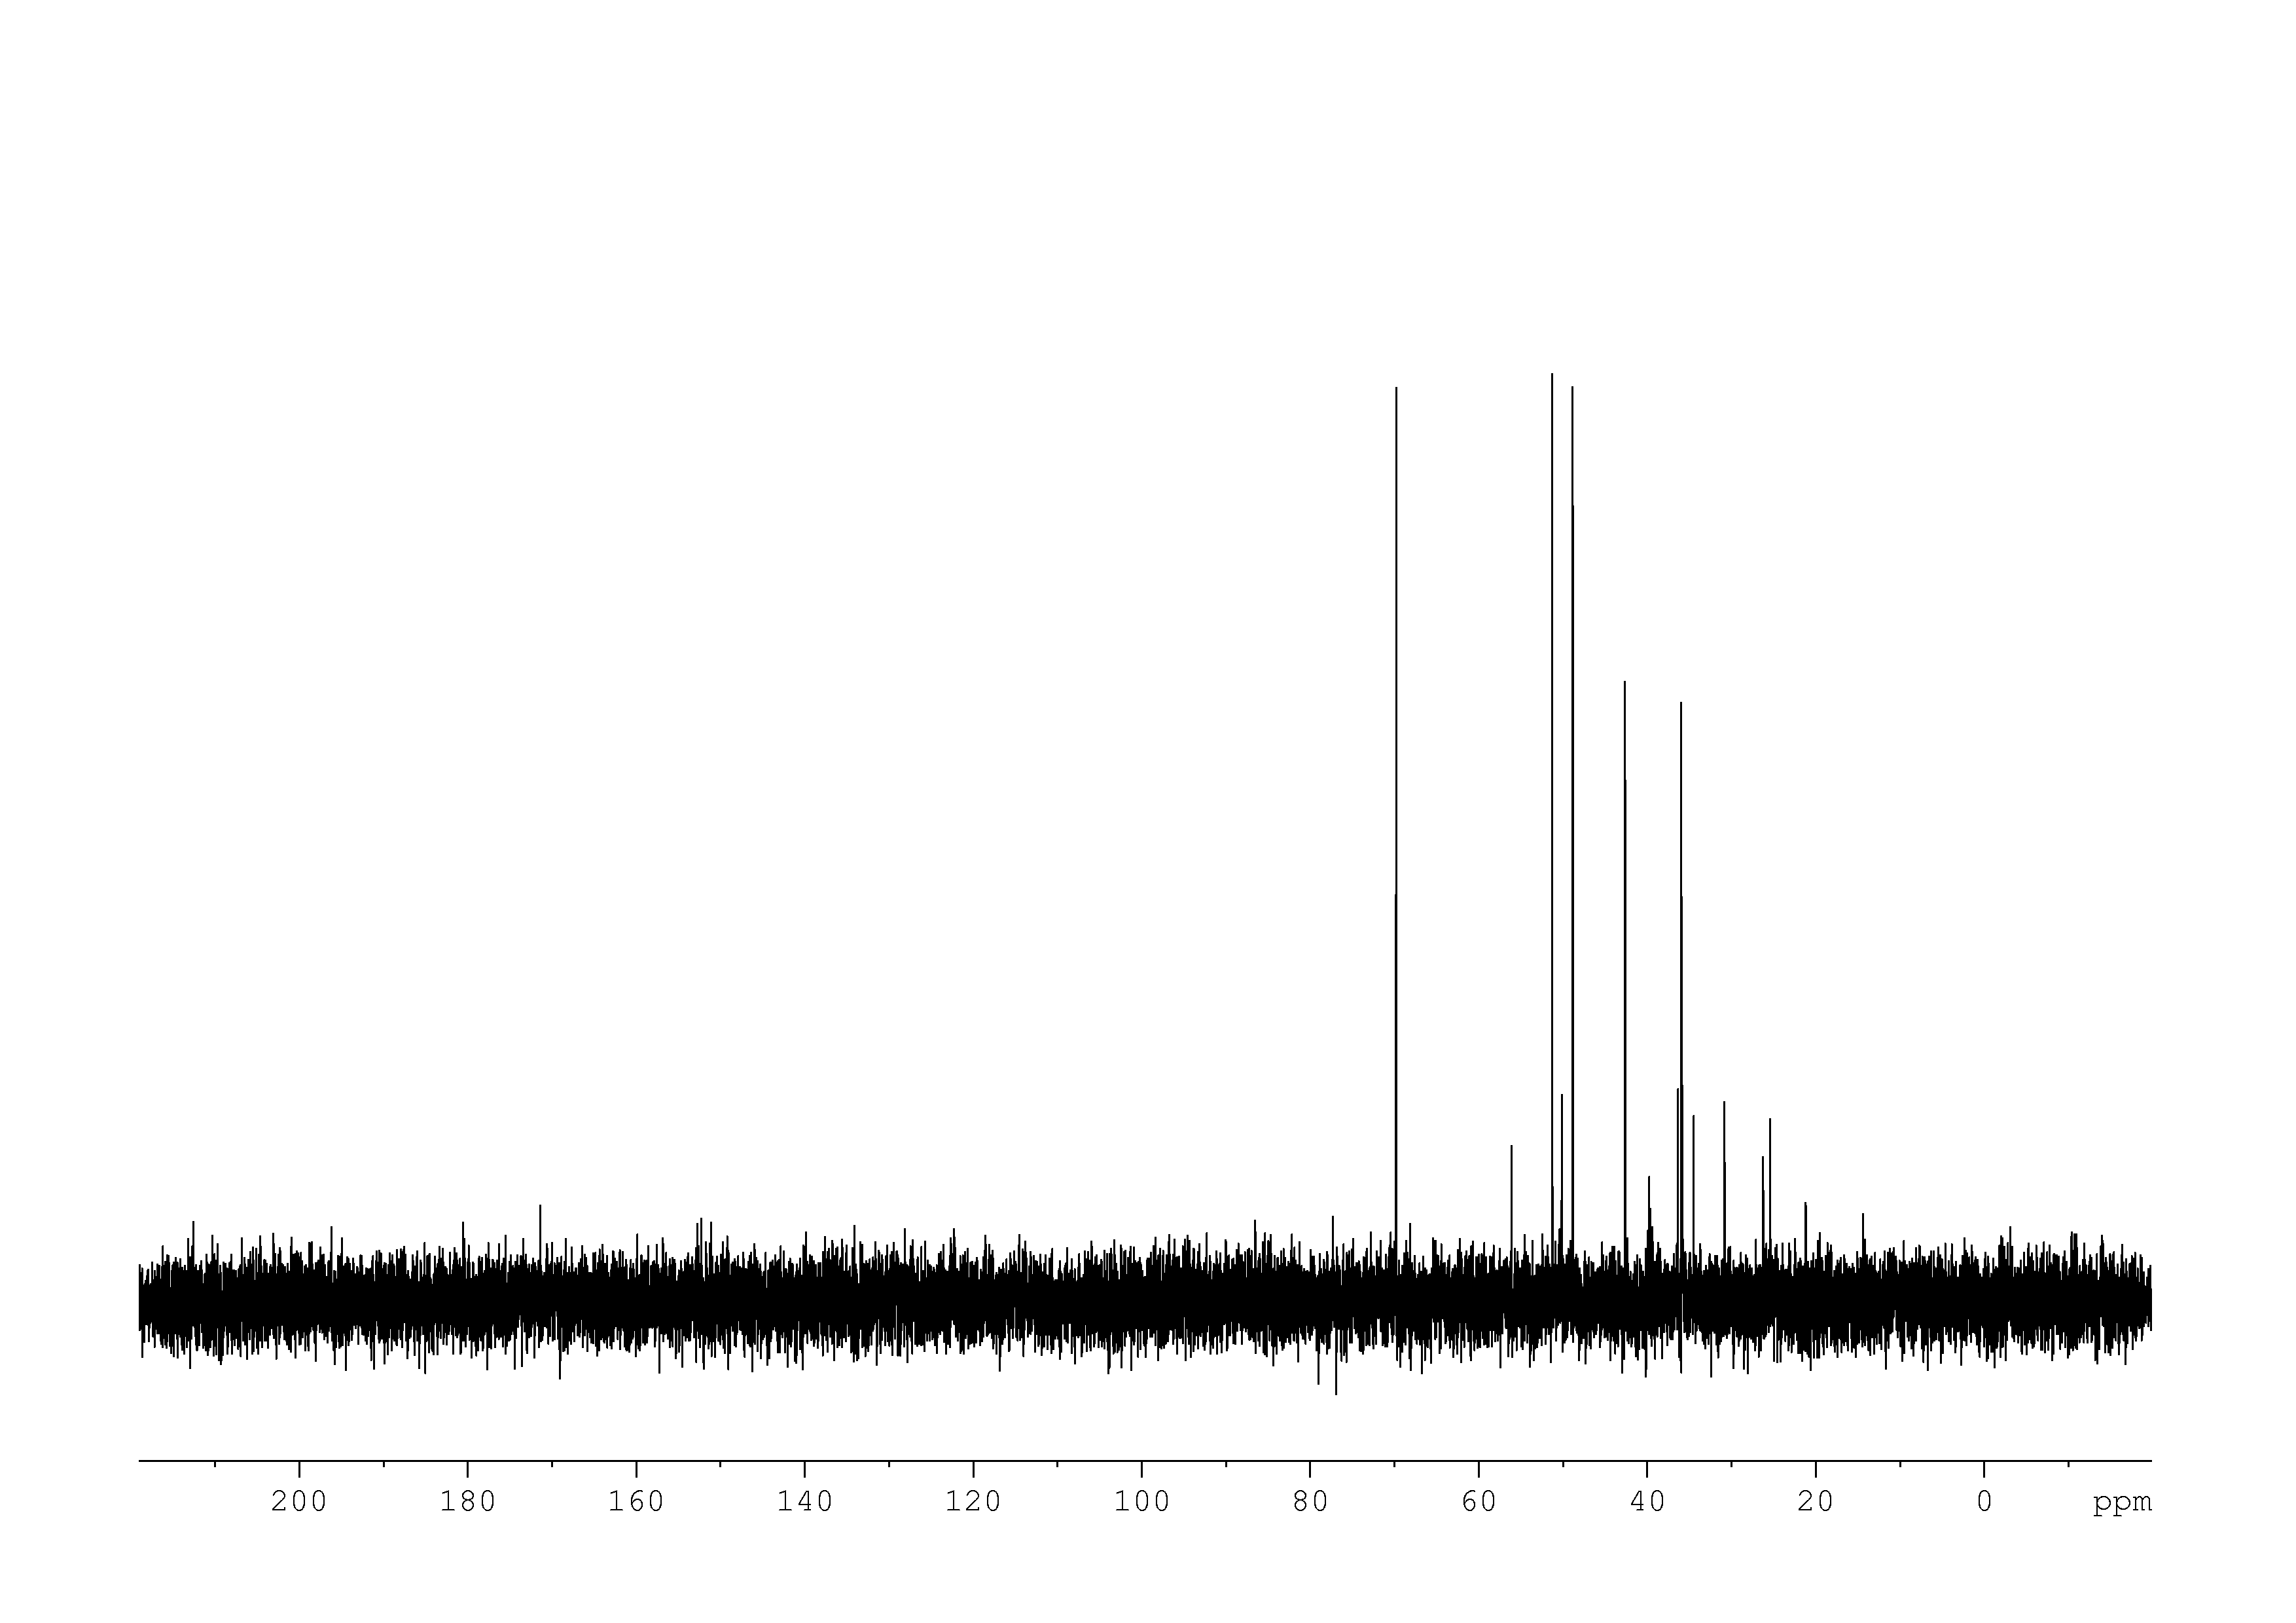 1D DEPT90, n/a spectrum for 11-Ketoetiocholanolone